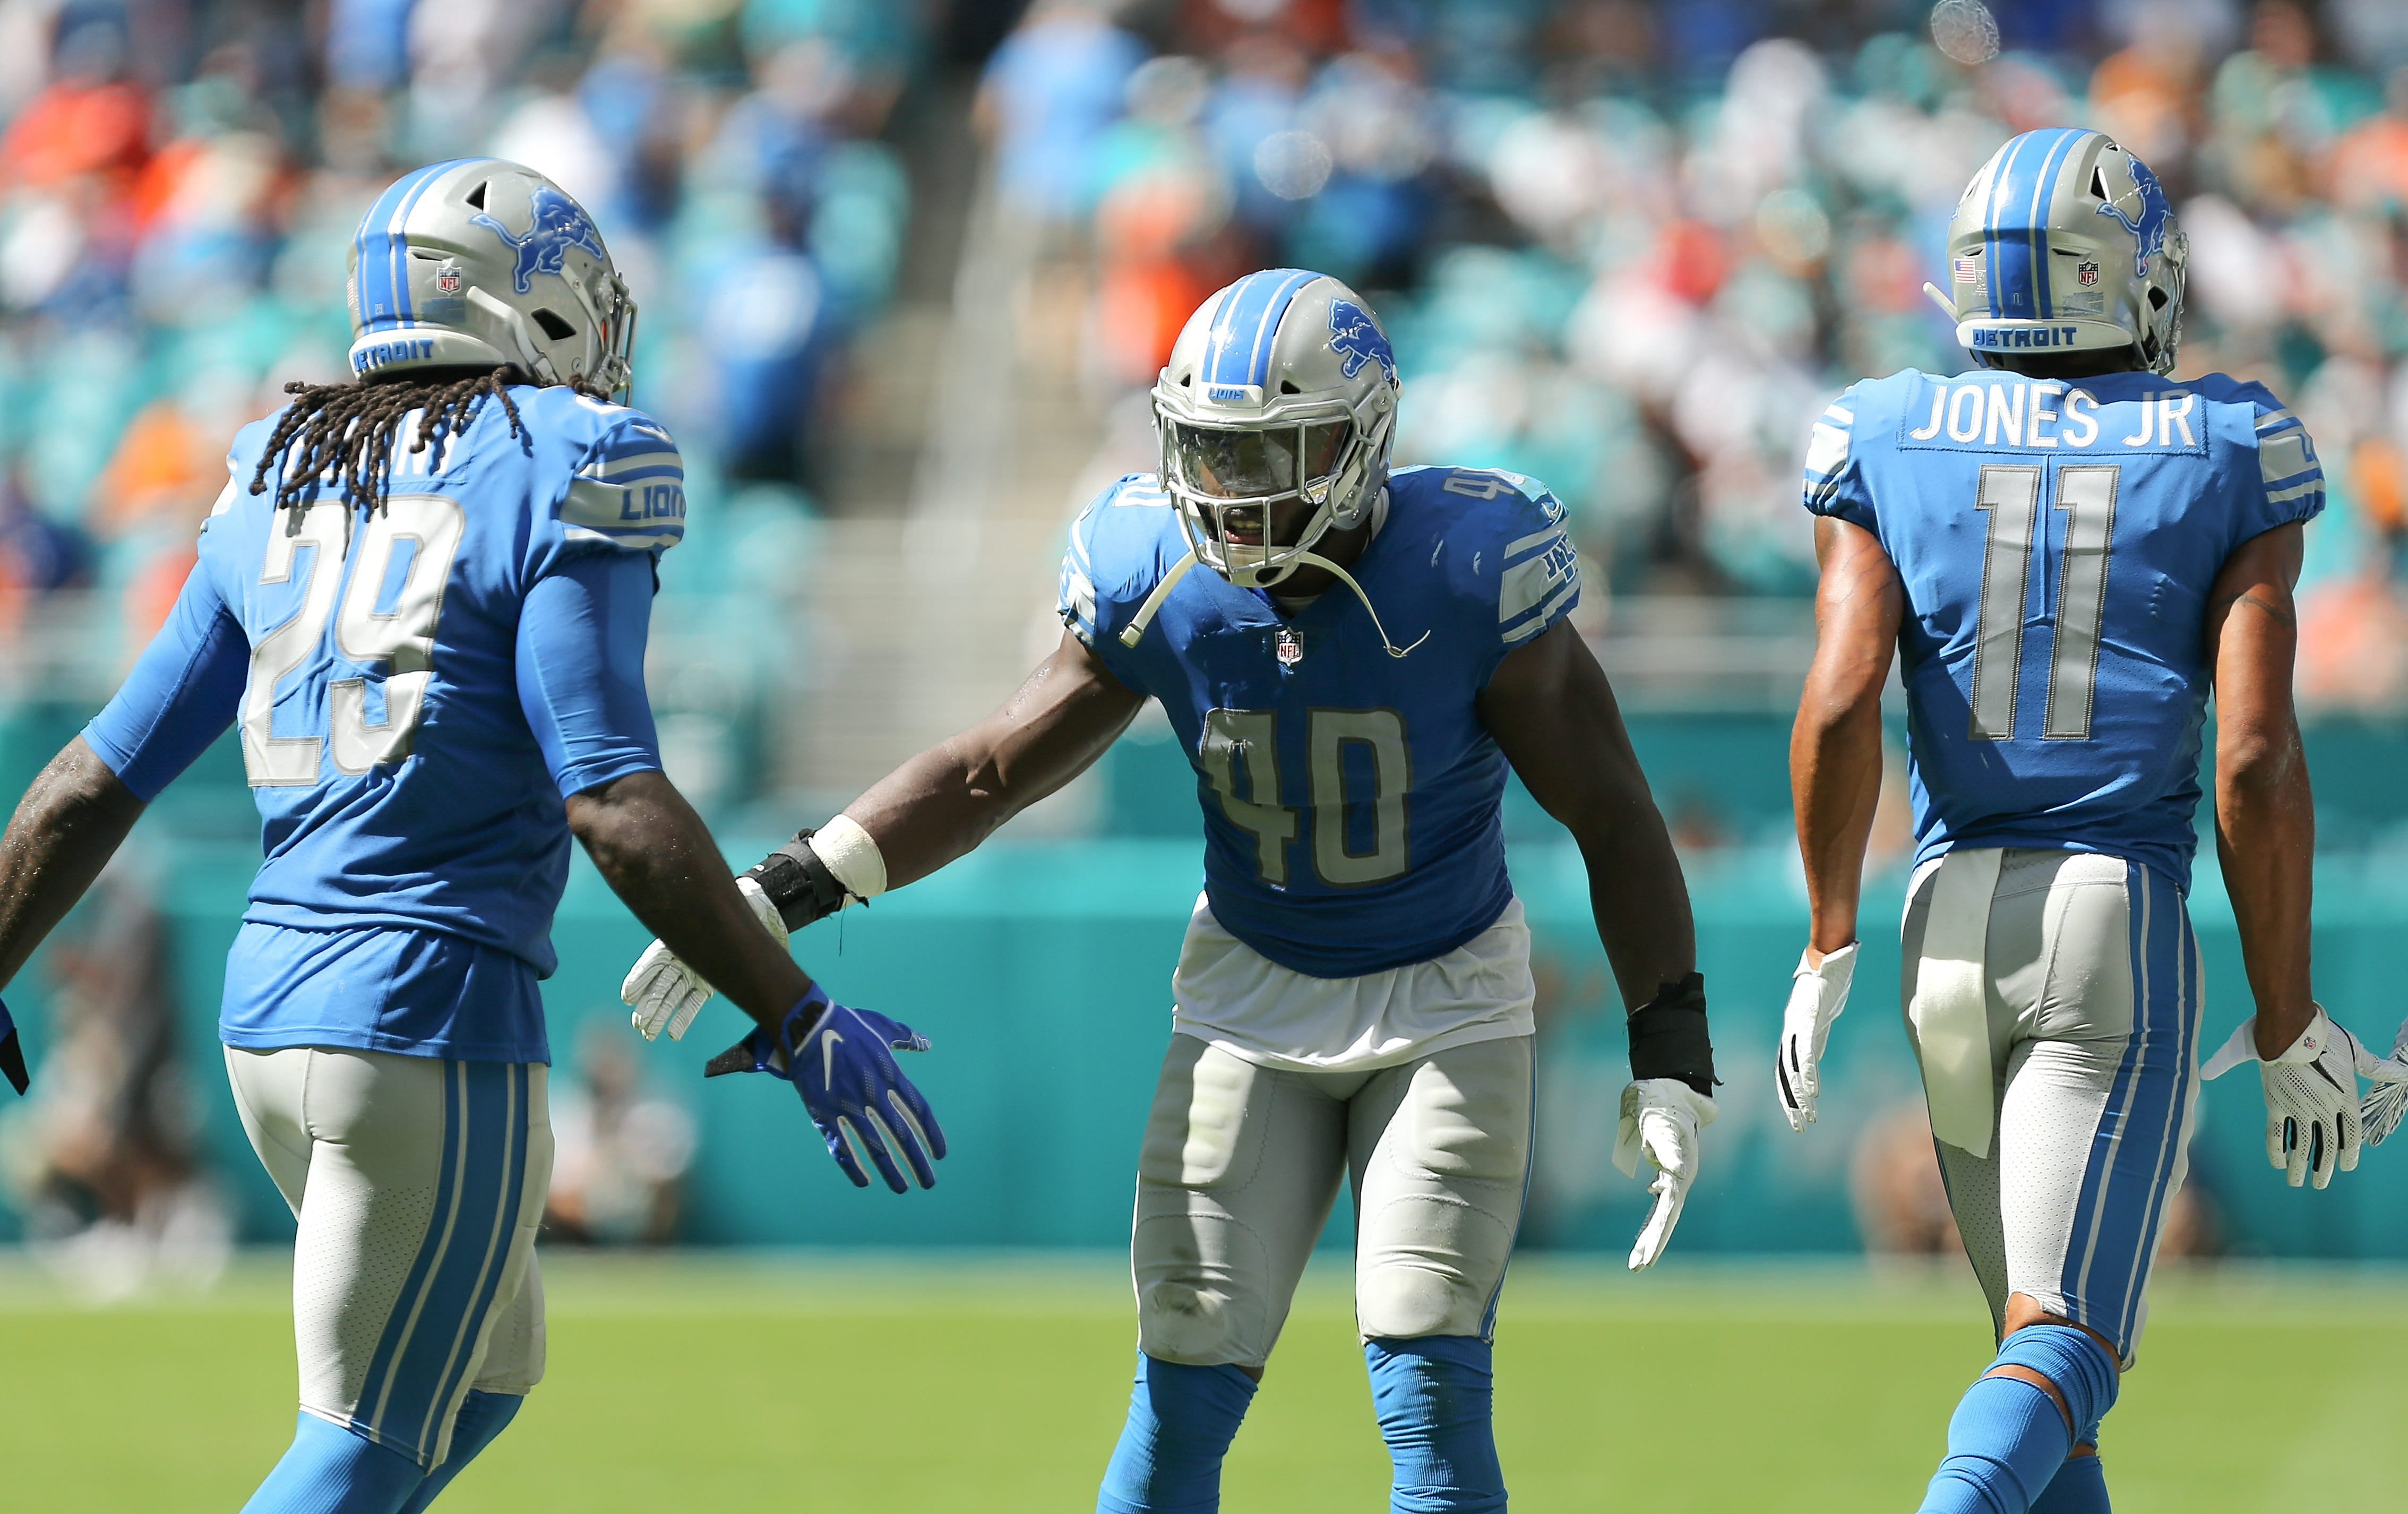 Lions linebacker Jarrad Davis, center, celebrates with LeGarrette Blount and Marvin Jones after a touchdown during the first half of the Lions' 32-21 win on Sunday, Oct. 21, 2018, in Miami Gardens, Fla.